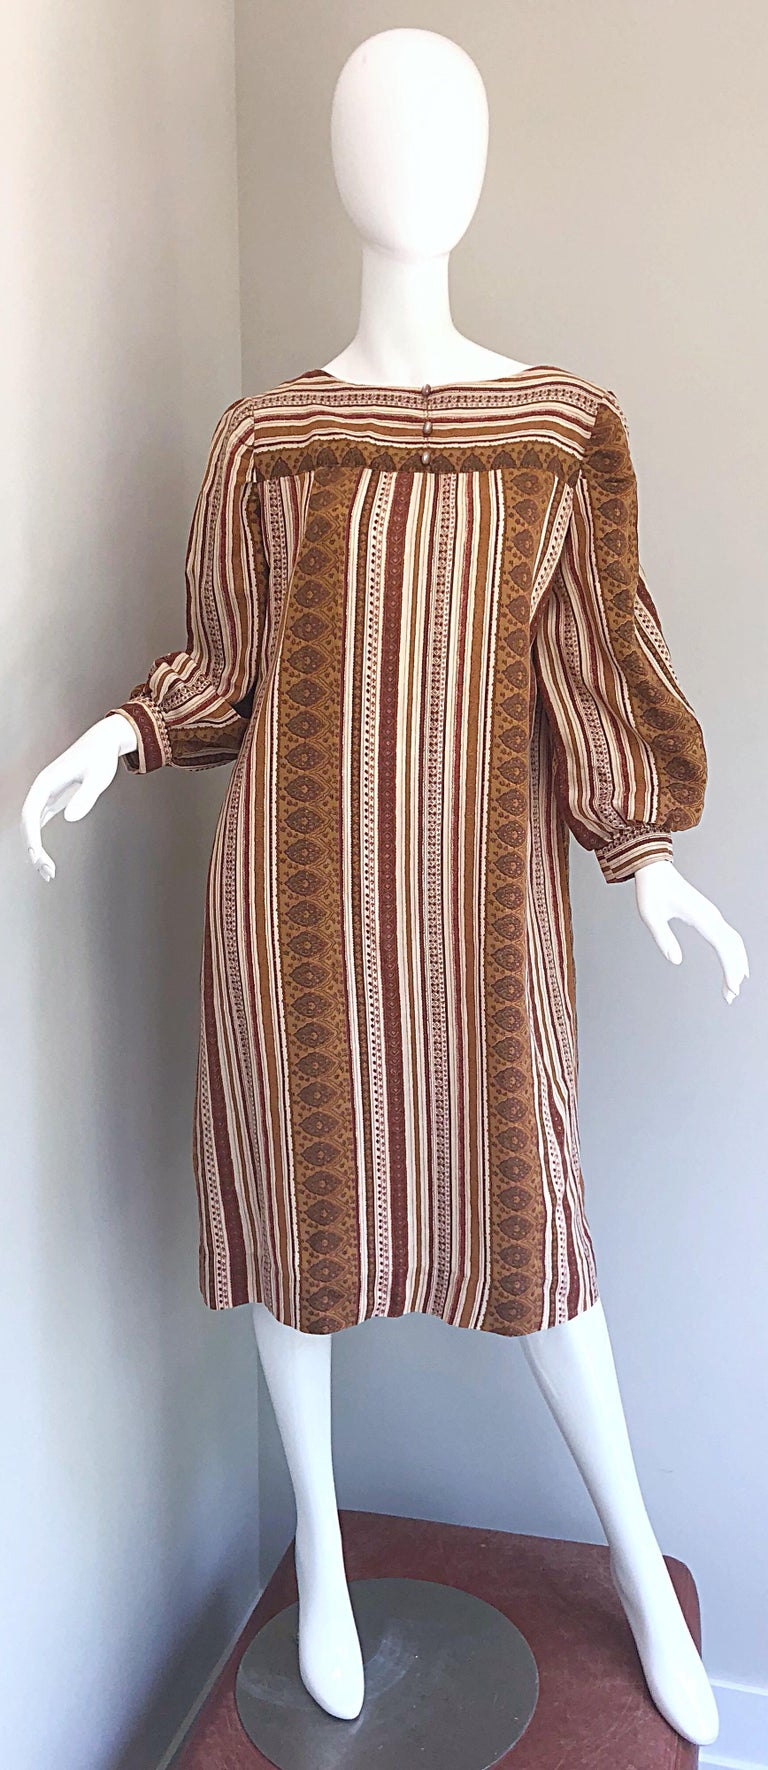 1970s Boho Chic Brown and Ivory Soft Cotton Paisley Print Vintage 70s Dress For Sale 12